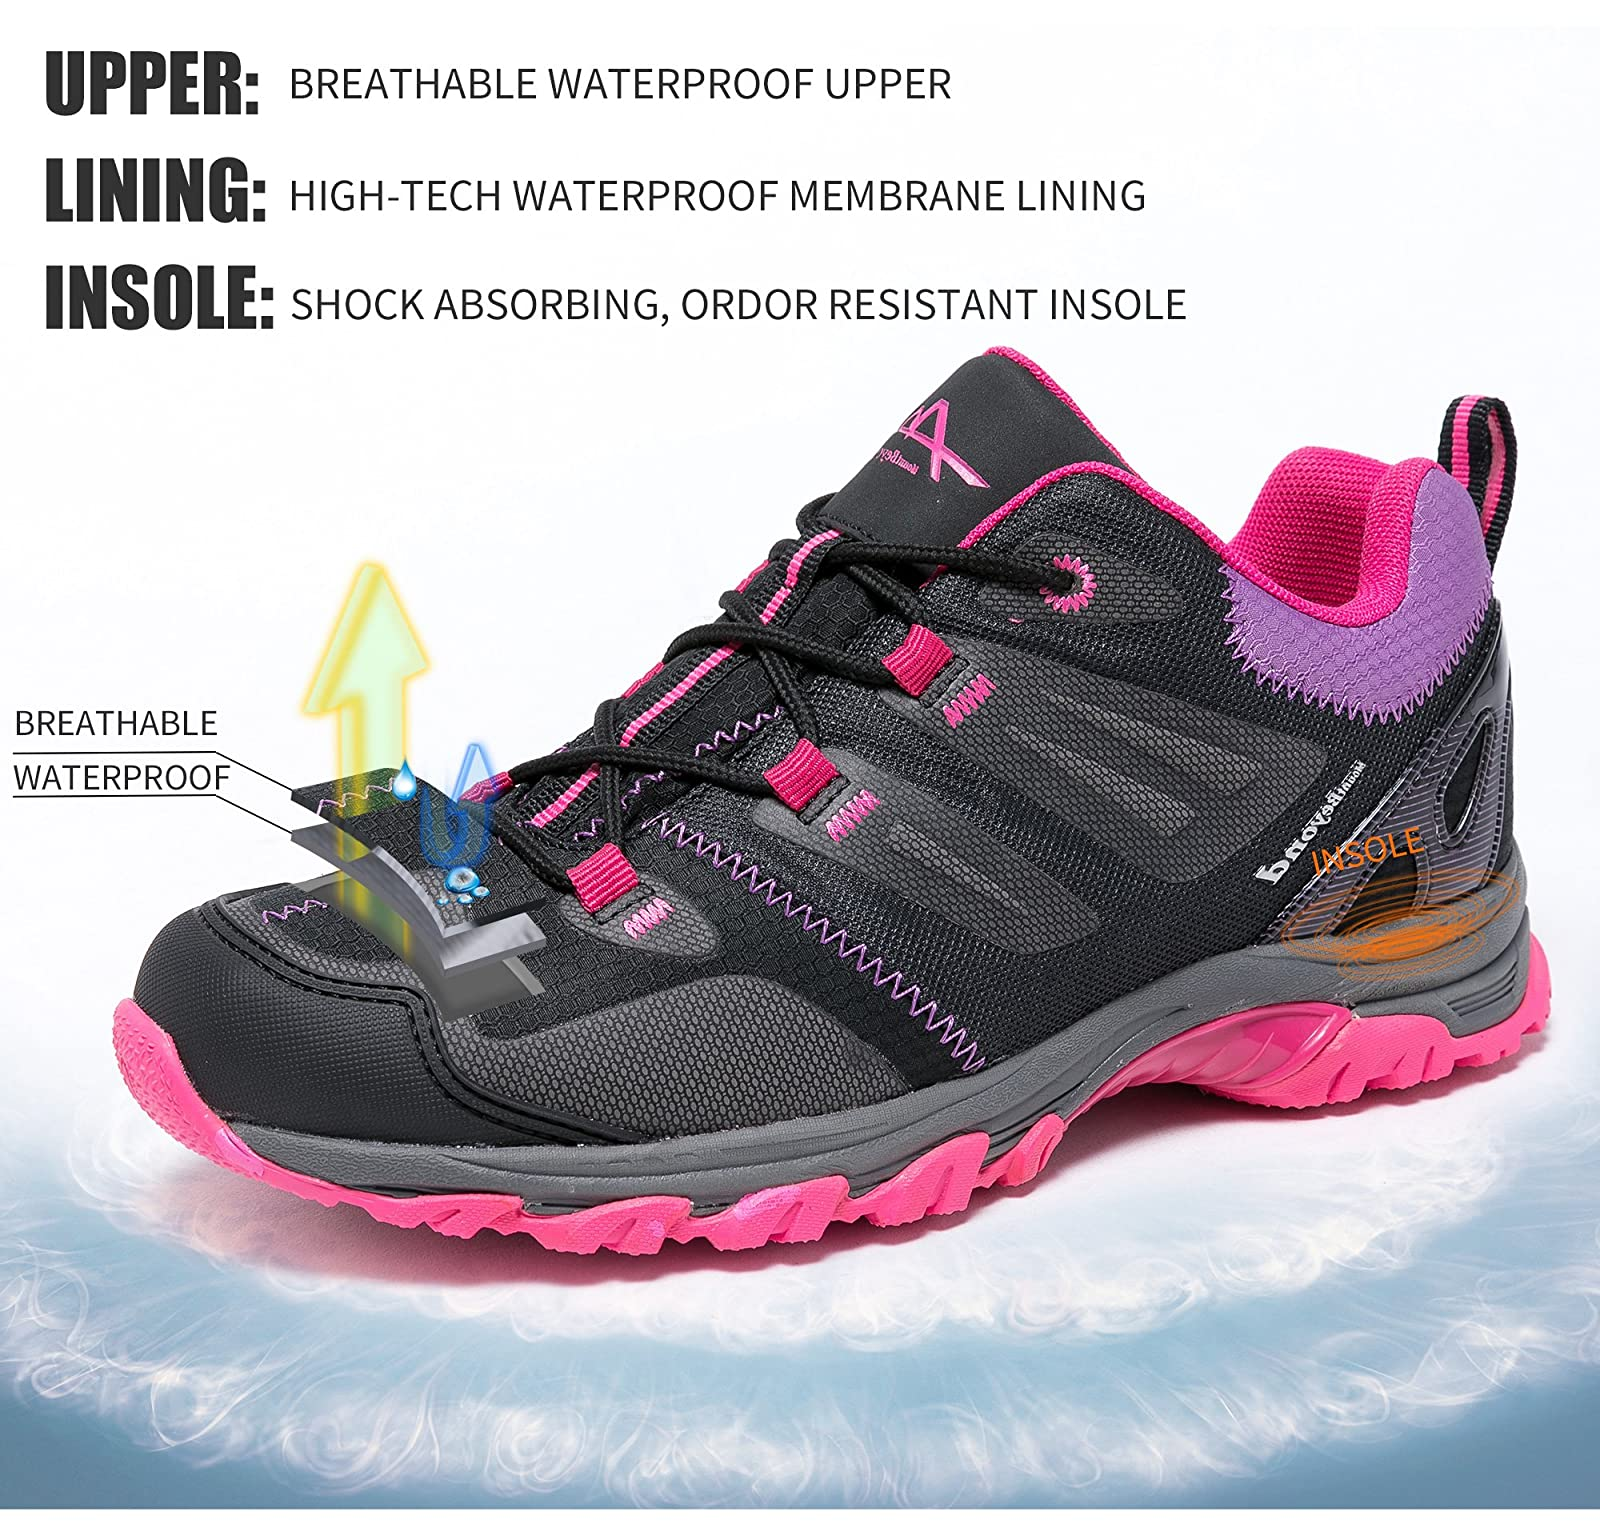 Mountbeyond Womens Waterproof Hiking Shoes Outdoor Breathable W001A - 1